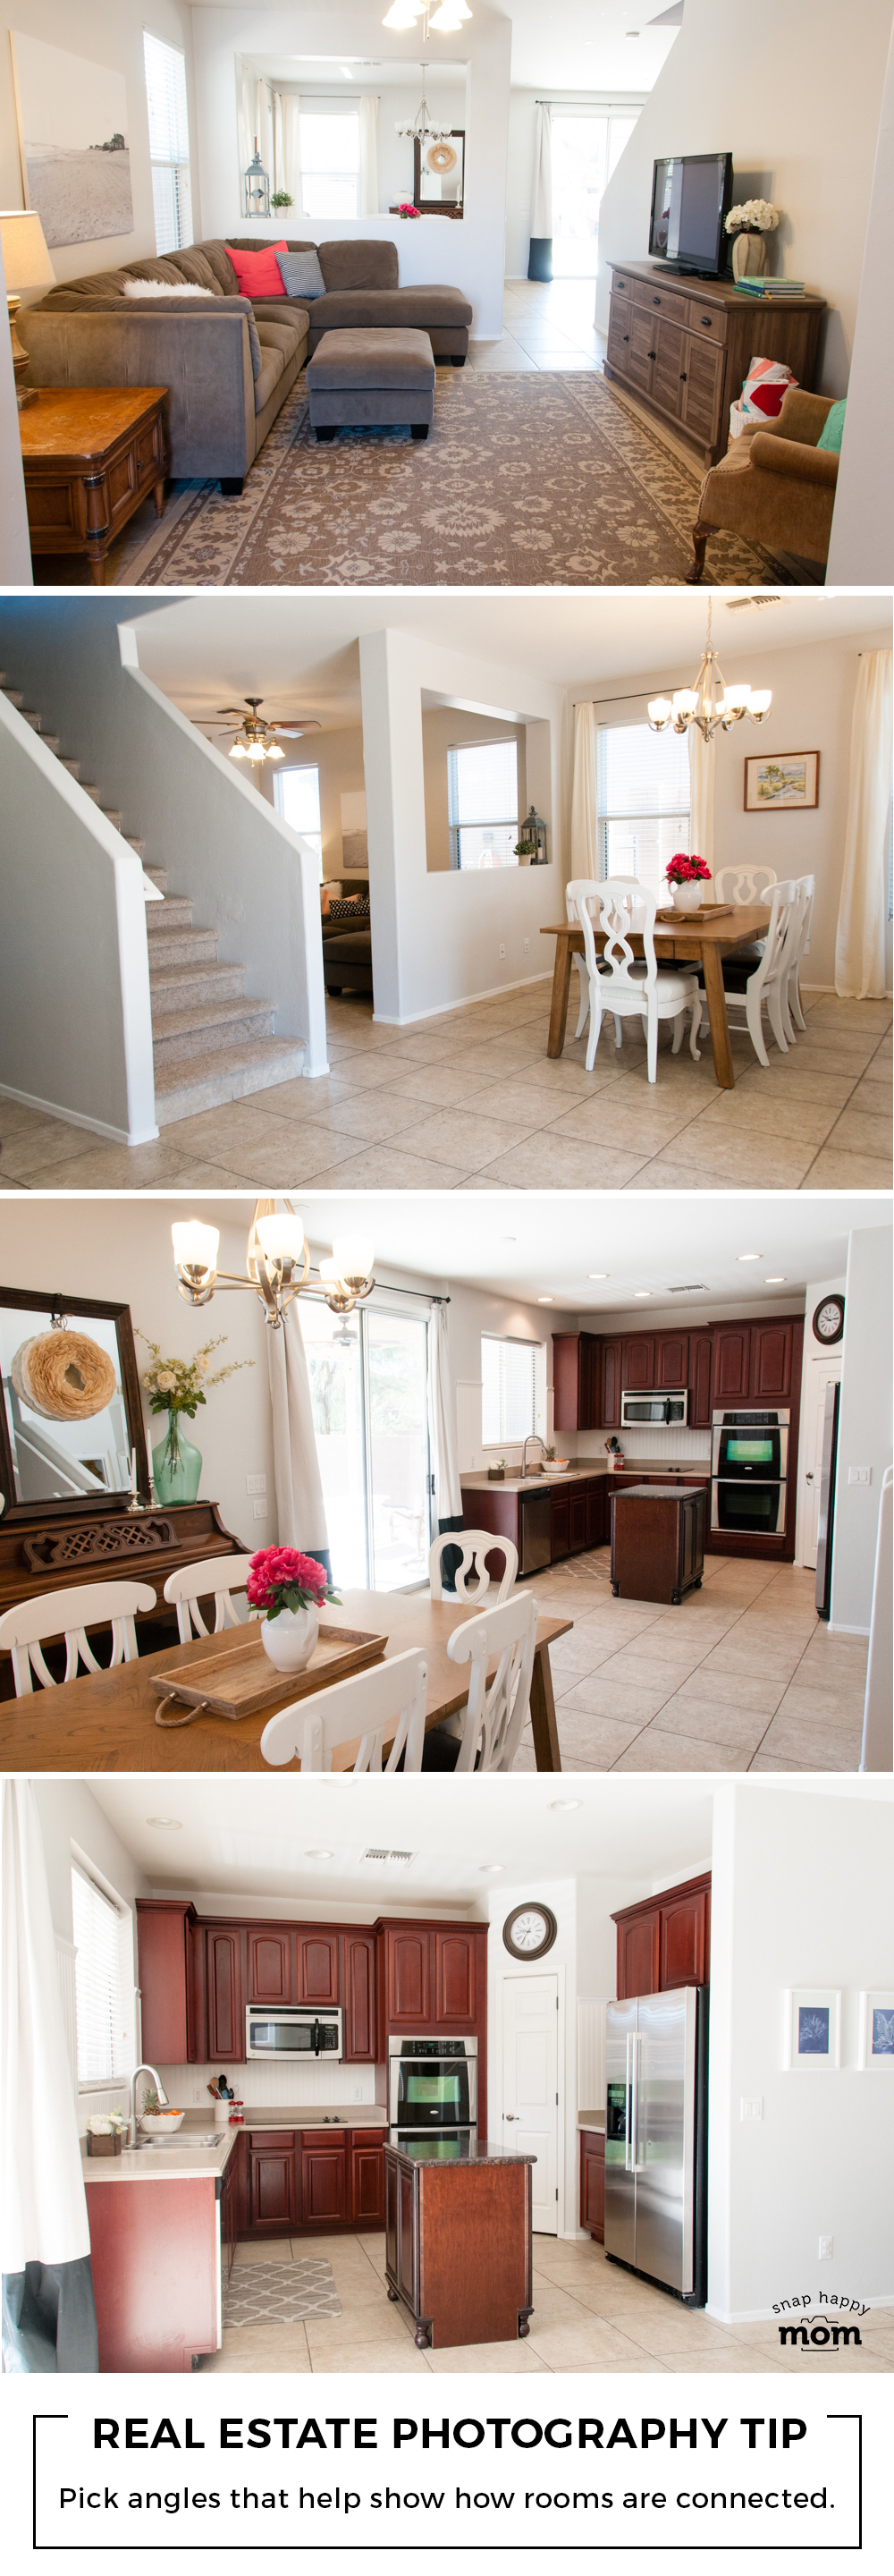 Real Estate Photography Tip: Use good angles and composition to help show how the rooms are connected.